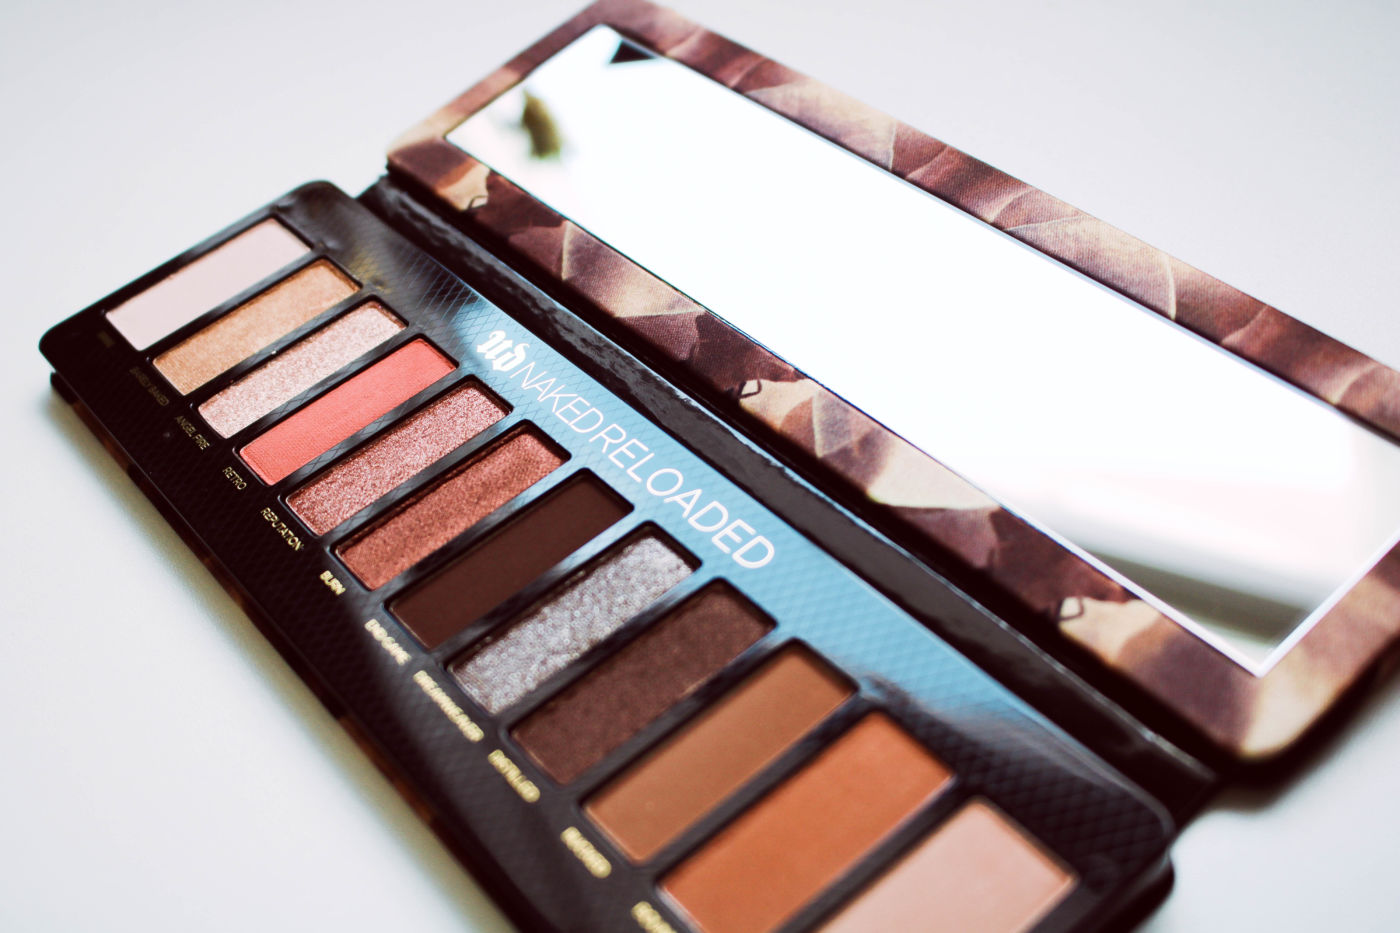 Review + Swatches: Urban Decay Naked Honey Palette